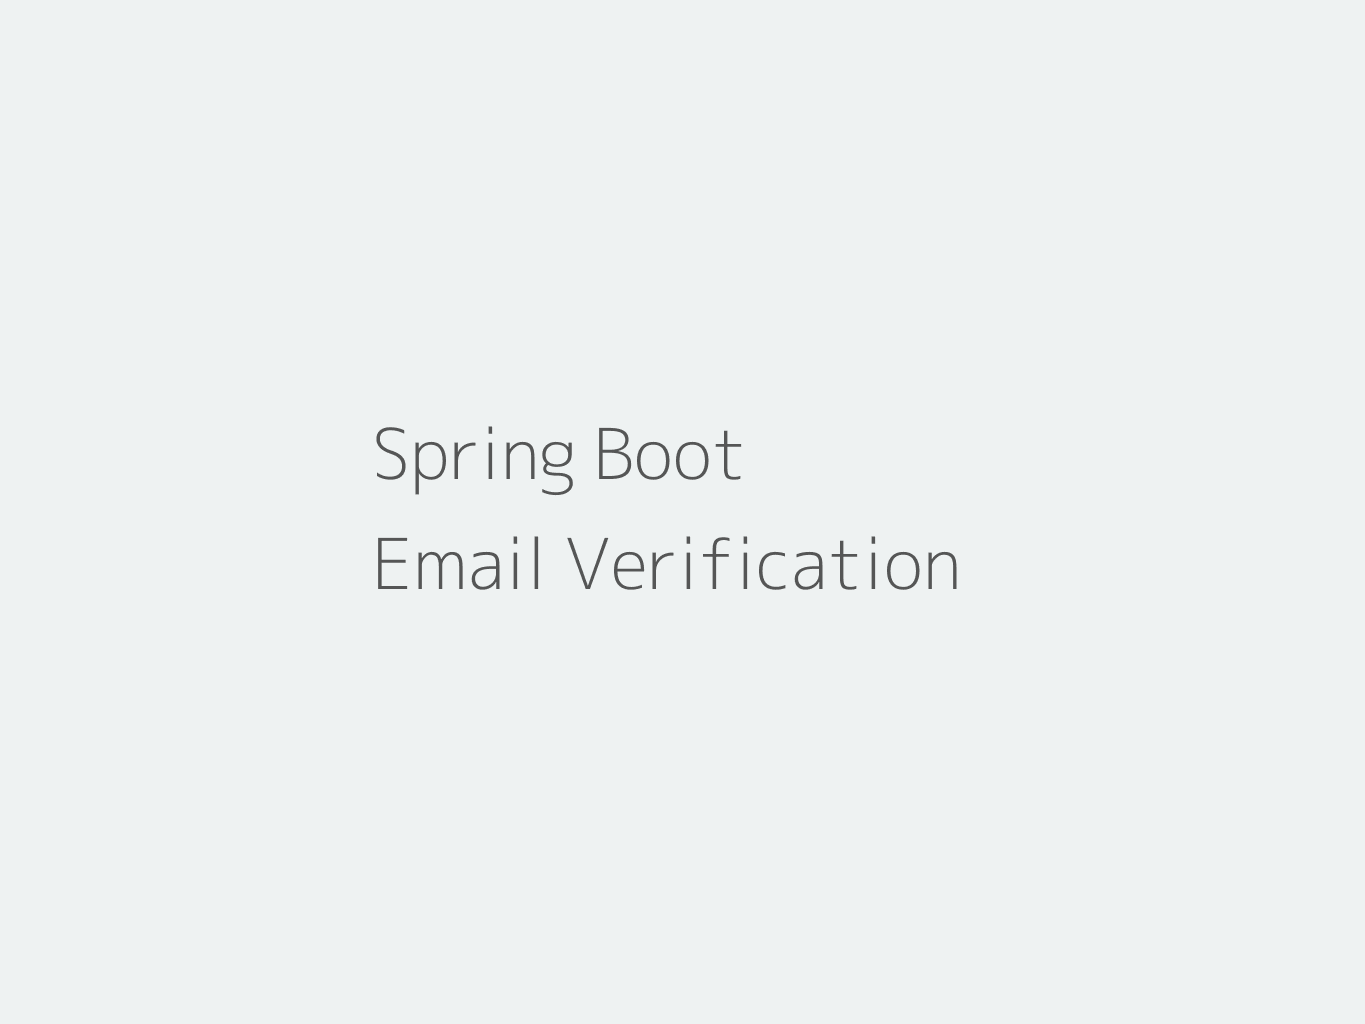 Email Verification Example with Spring Boot, MySQL, and